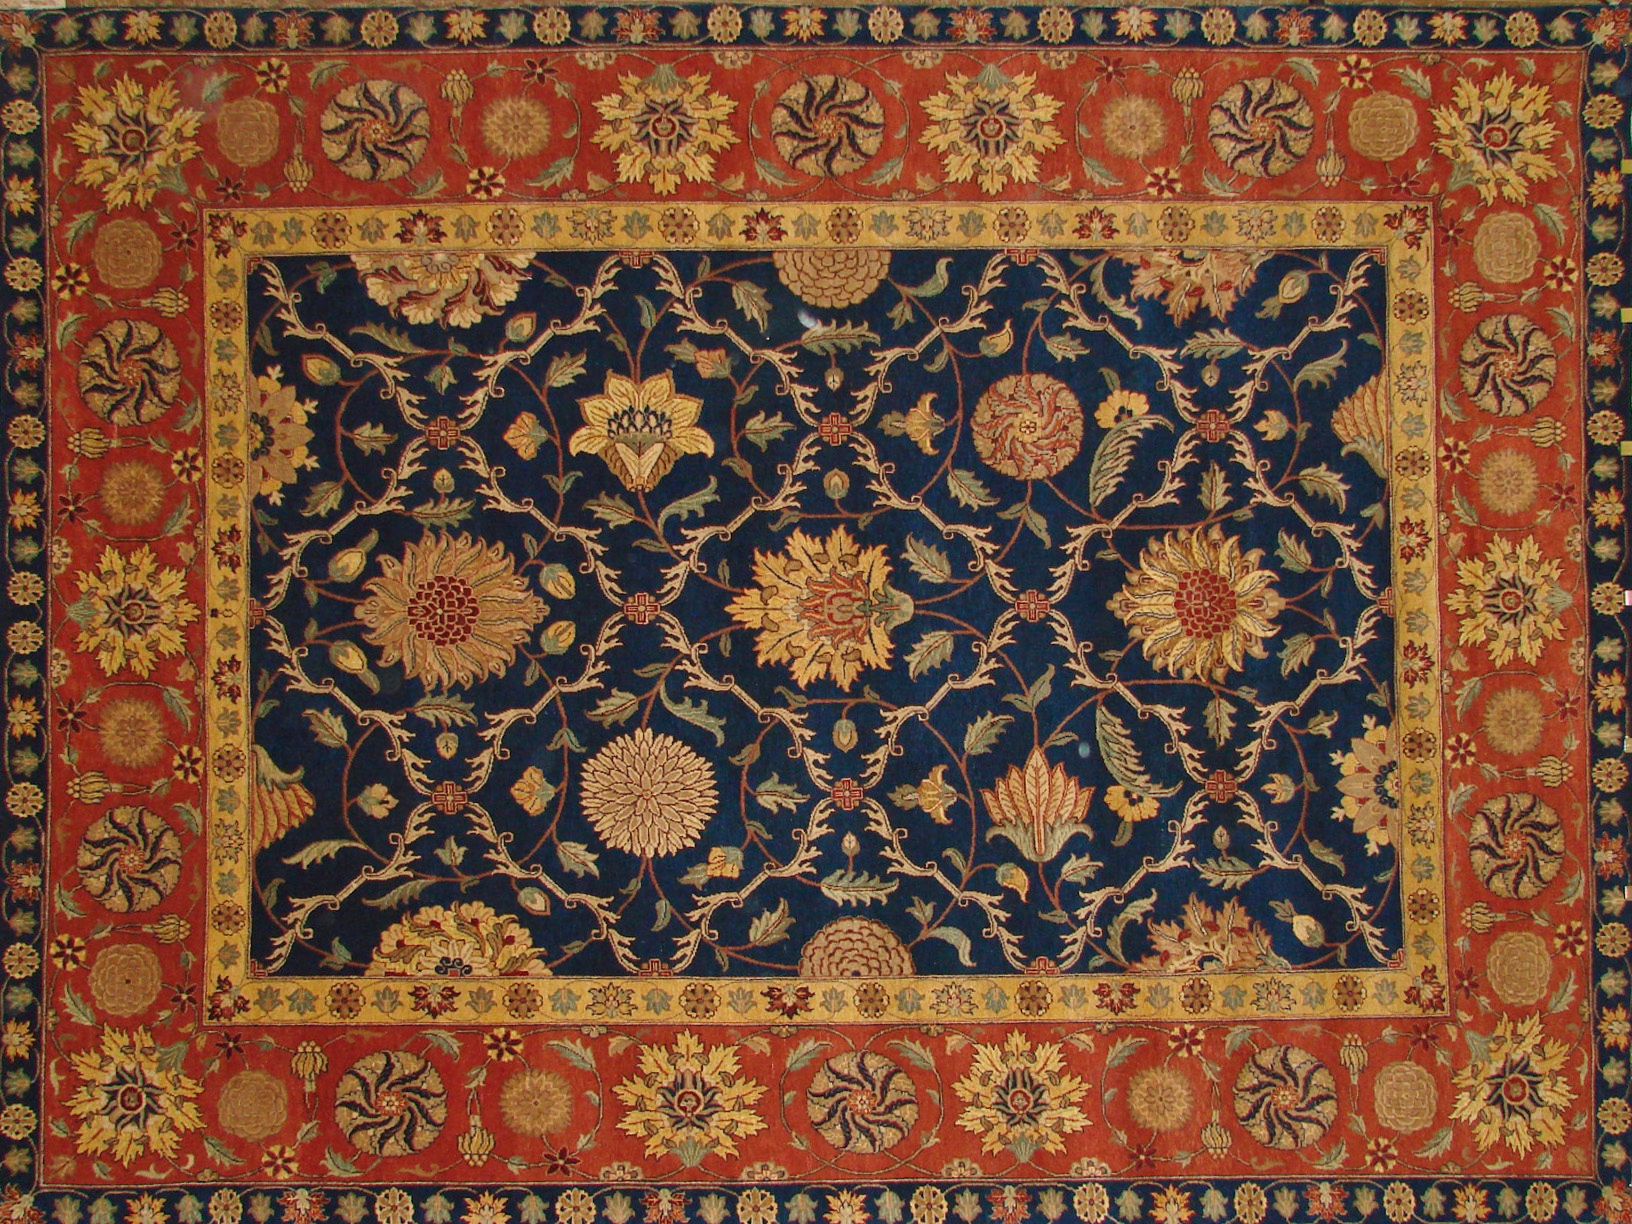 9x12 Jaipur Hand Knotted Wool Area Rug - MR2640